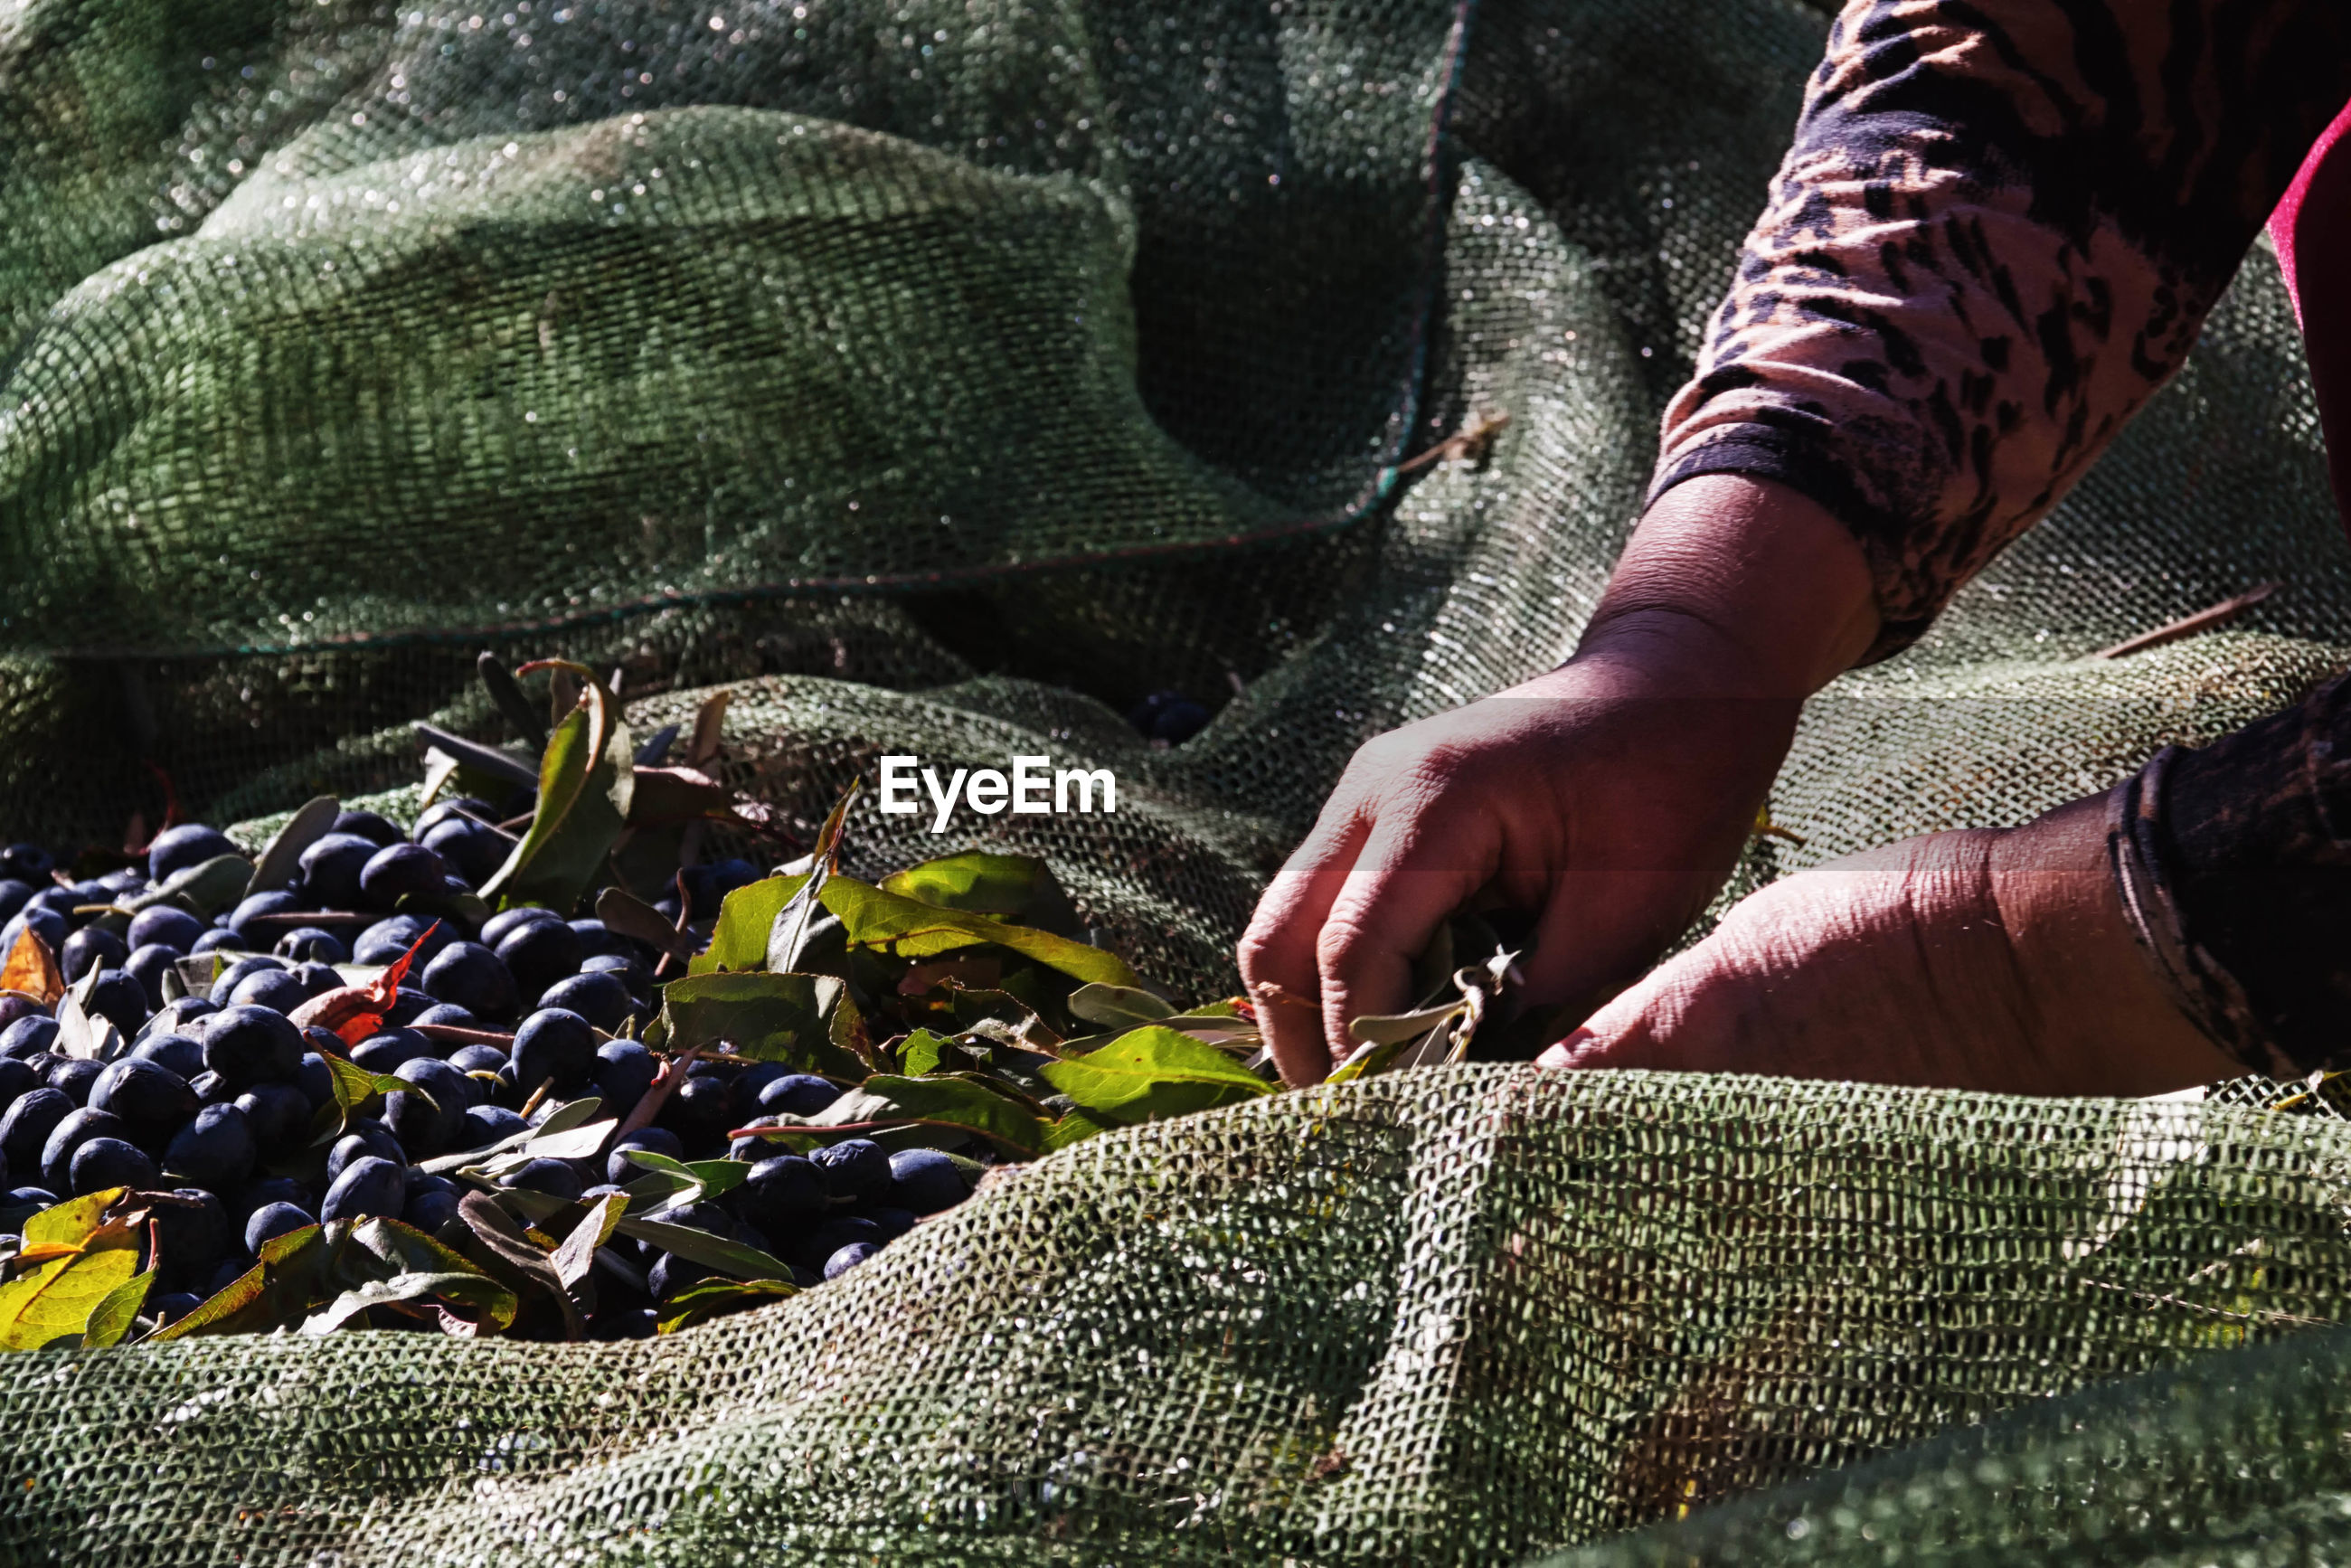 Cropped image of woman picking fresh blueberries from jute sack